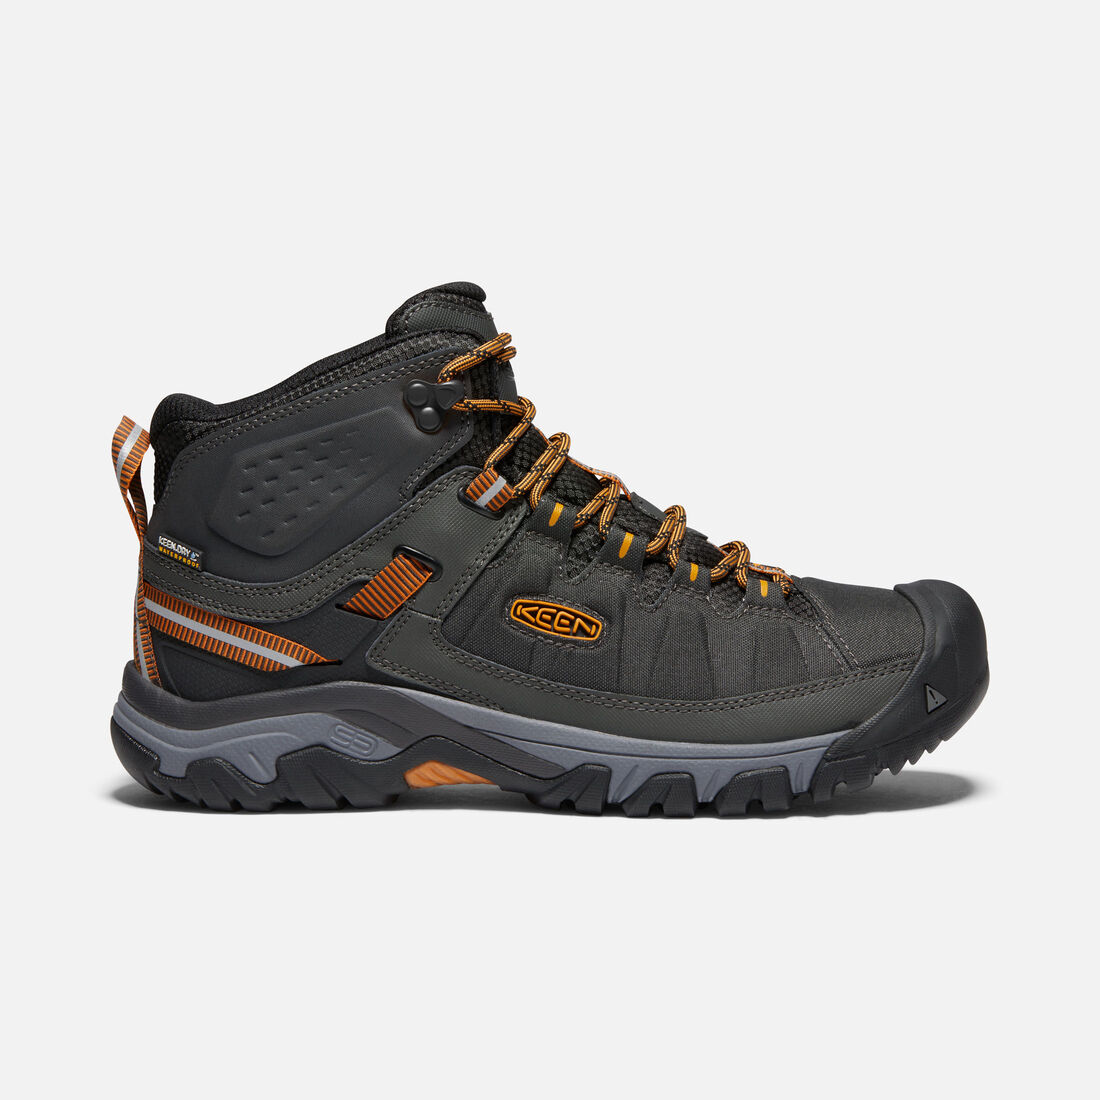 MEN'S TARGHEE EXP WATERPROOF MID HIKING BOOTS in RAVEN/INCA GOLD - large view.